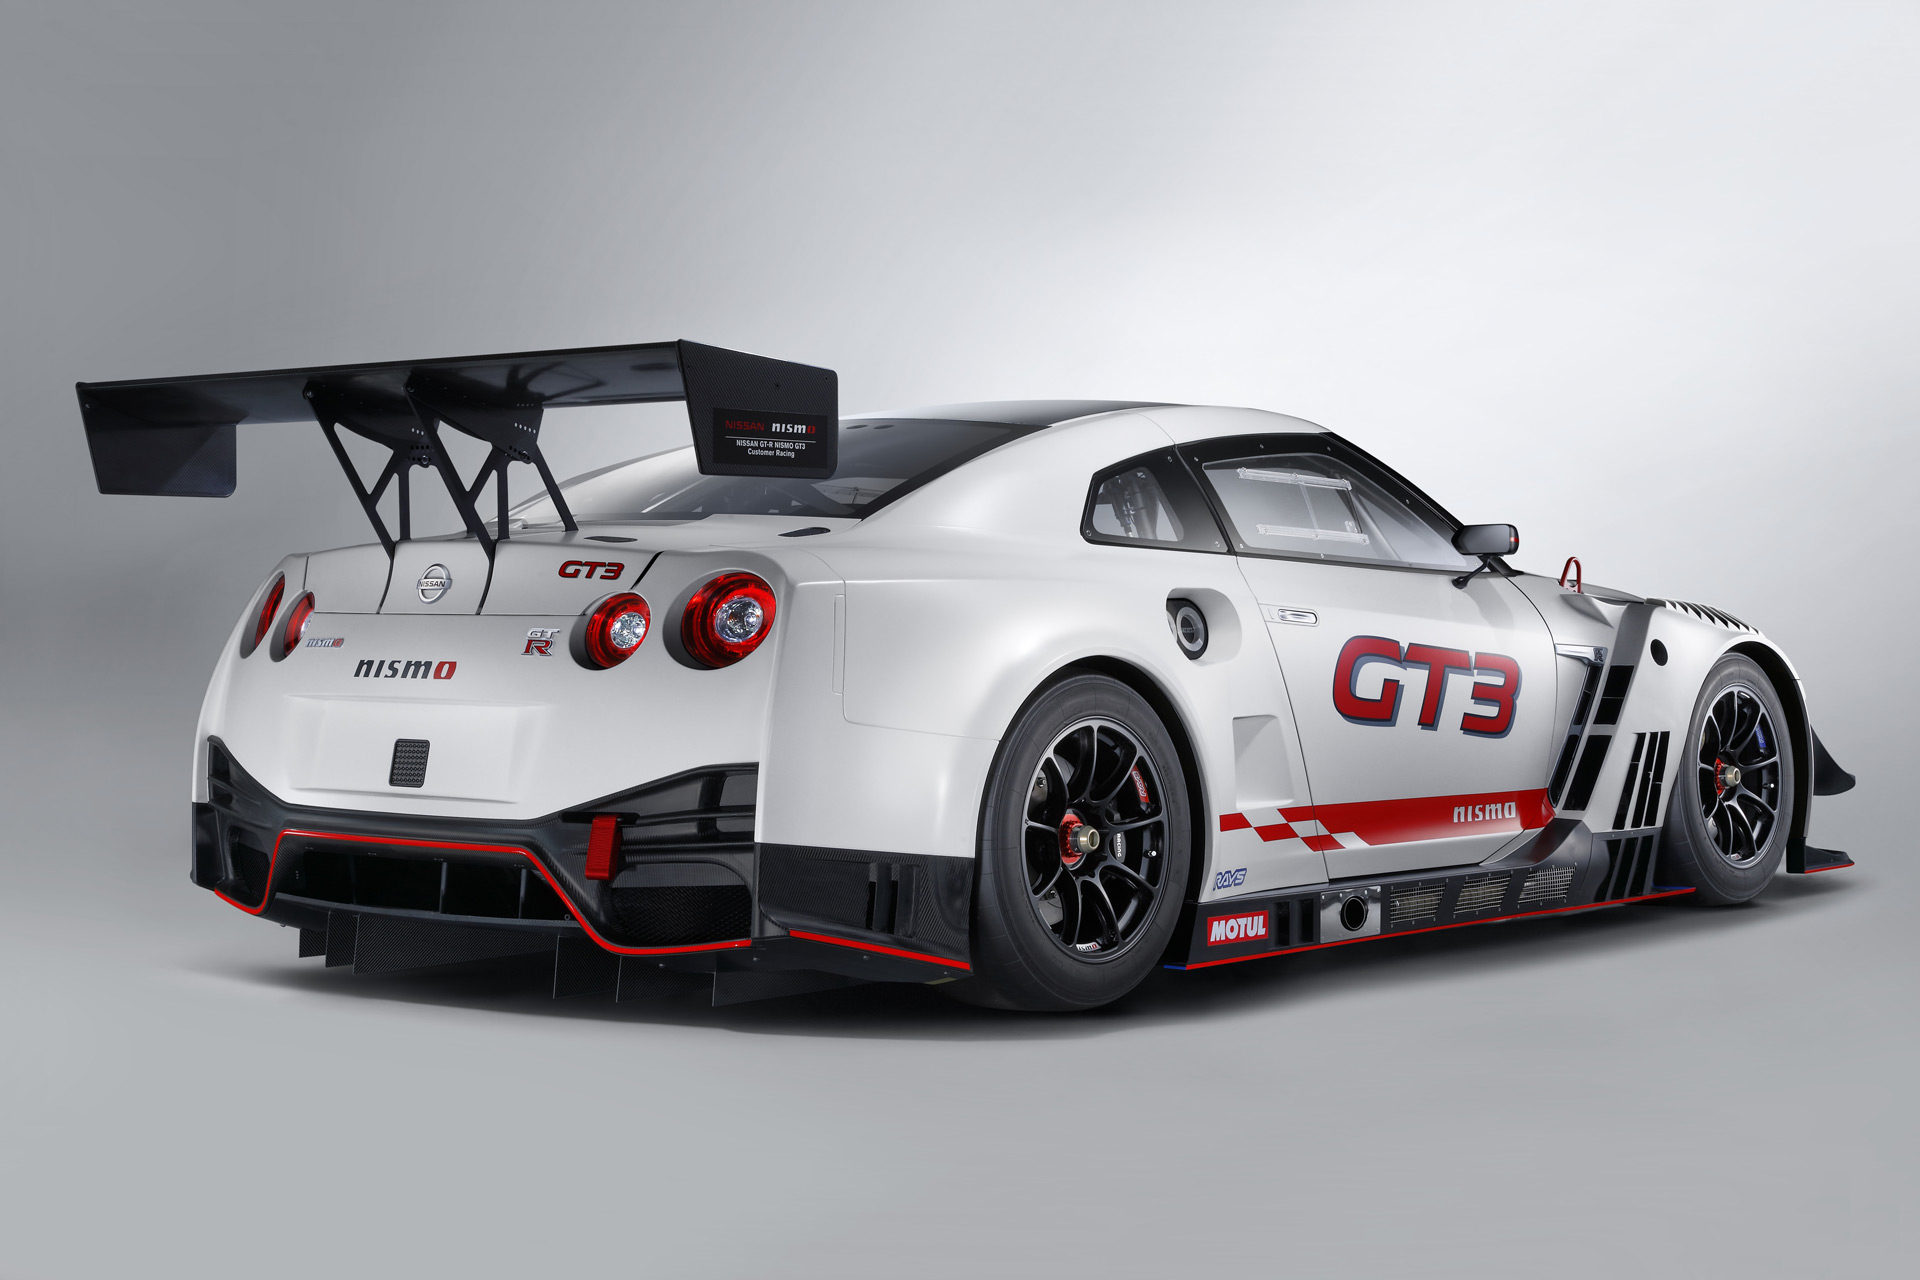 nissan updates gt r nismo gt3 race car for 2019. Black Bedroom Furniture Sets. Home Design Ideas